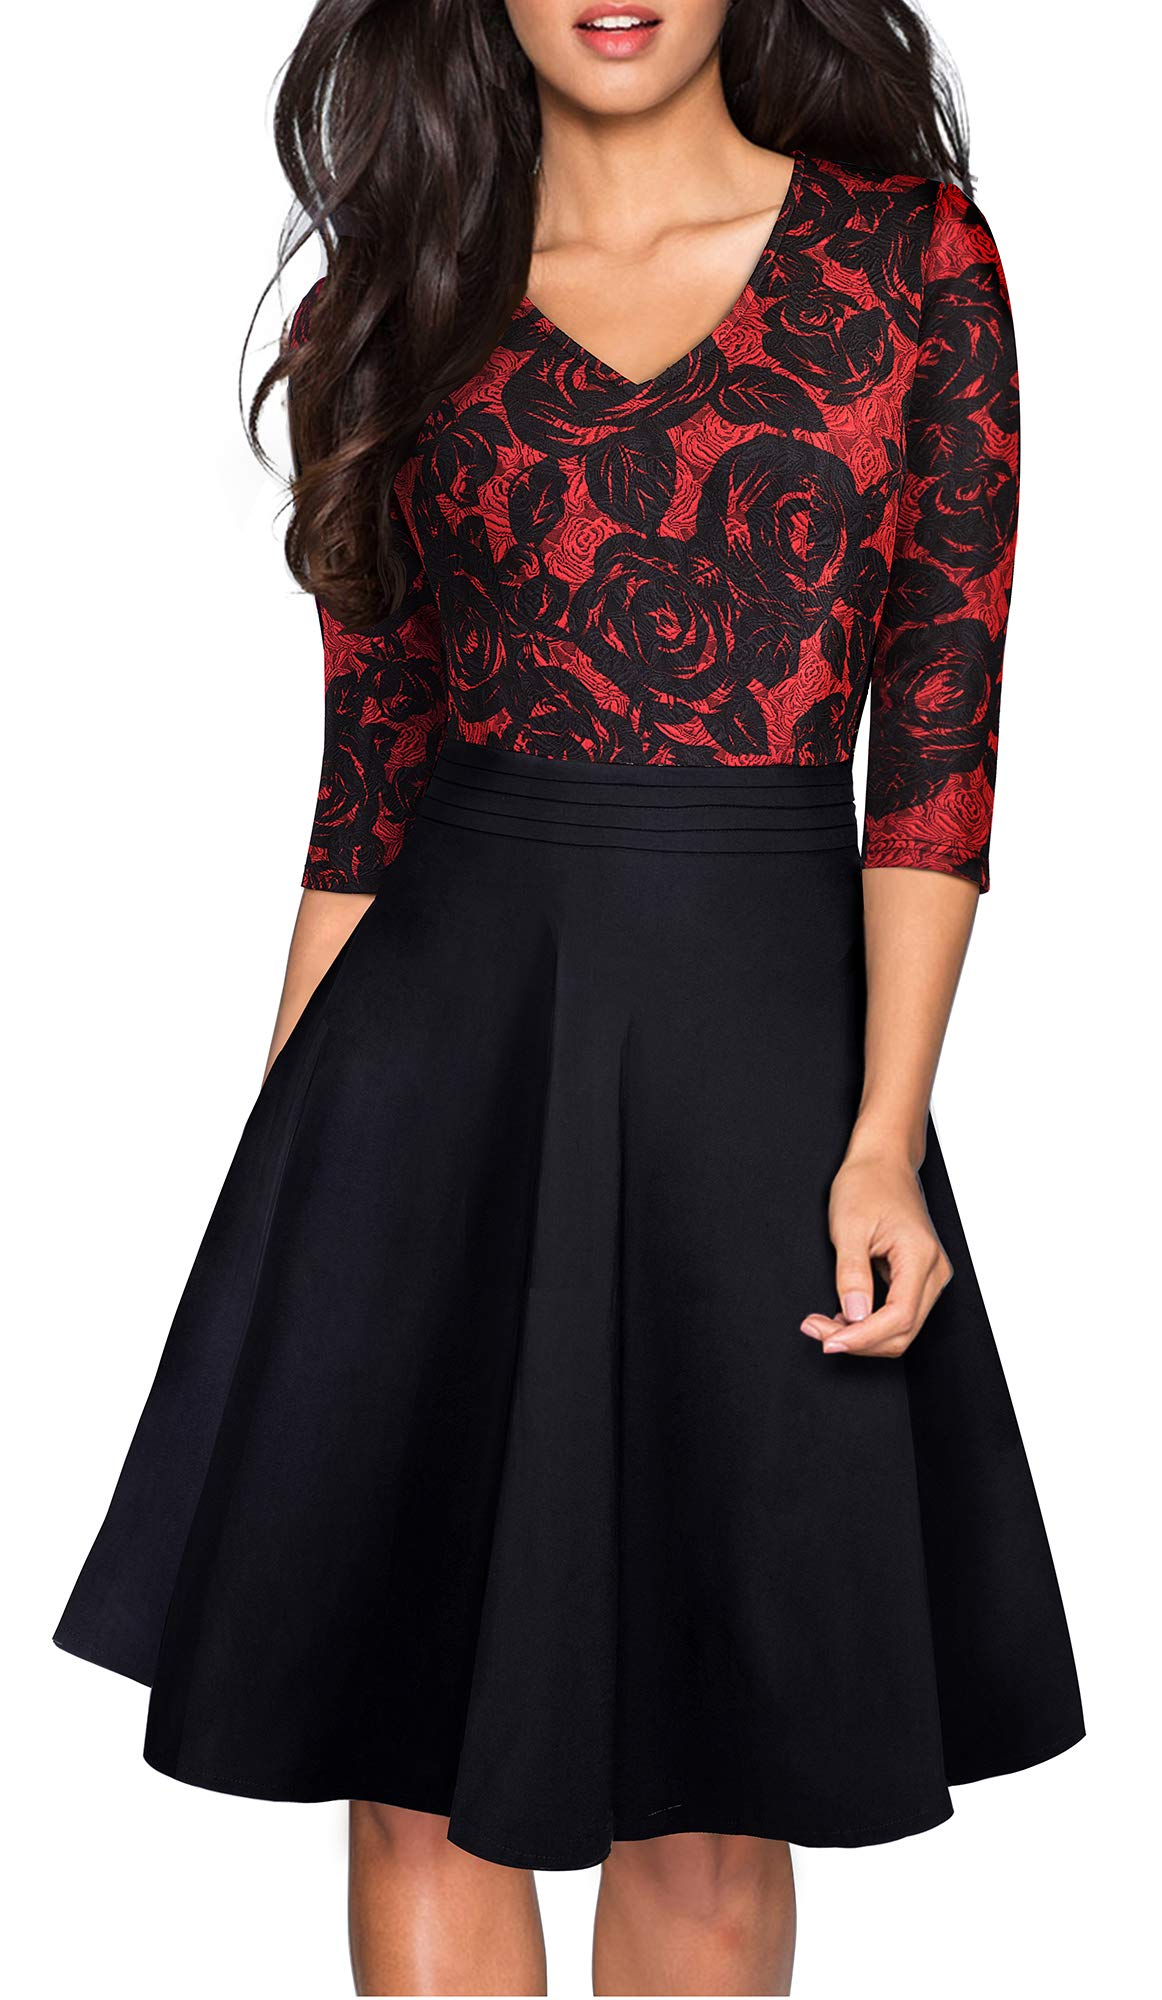 Red Dress - Women's Slimming 3/4 Sleeve Fit-And-Flare Crossover Tummy Control Dress